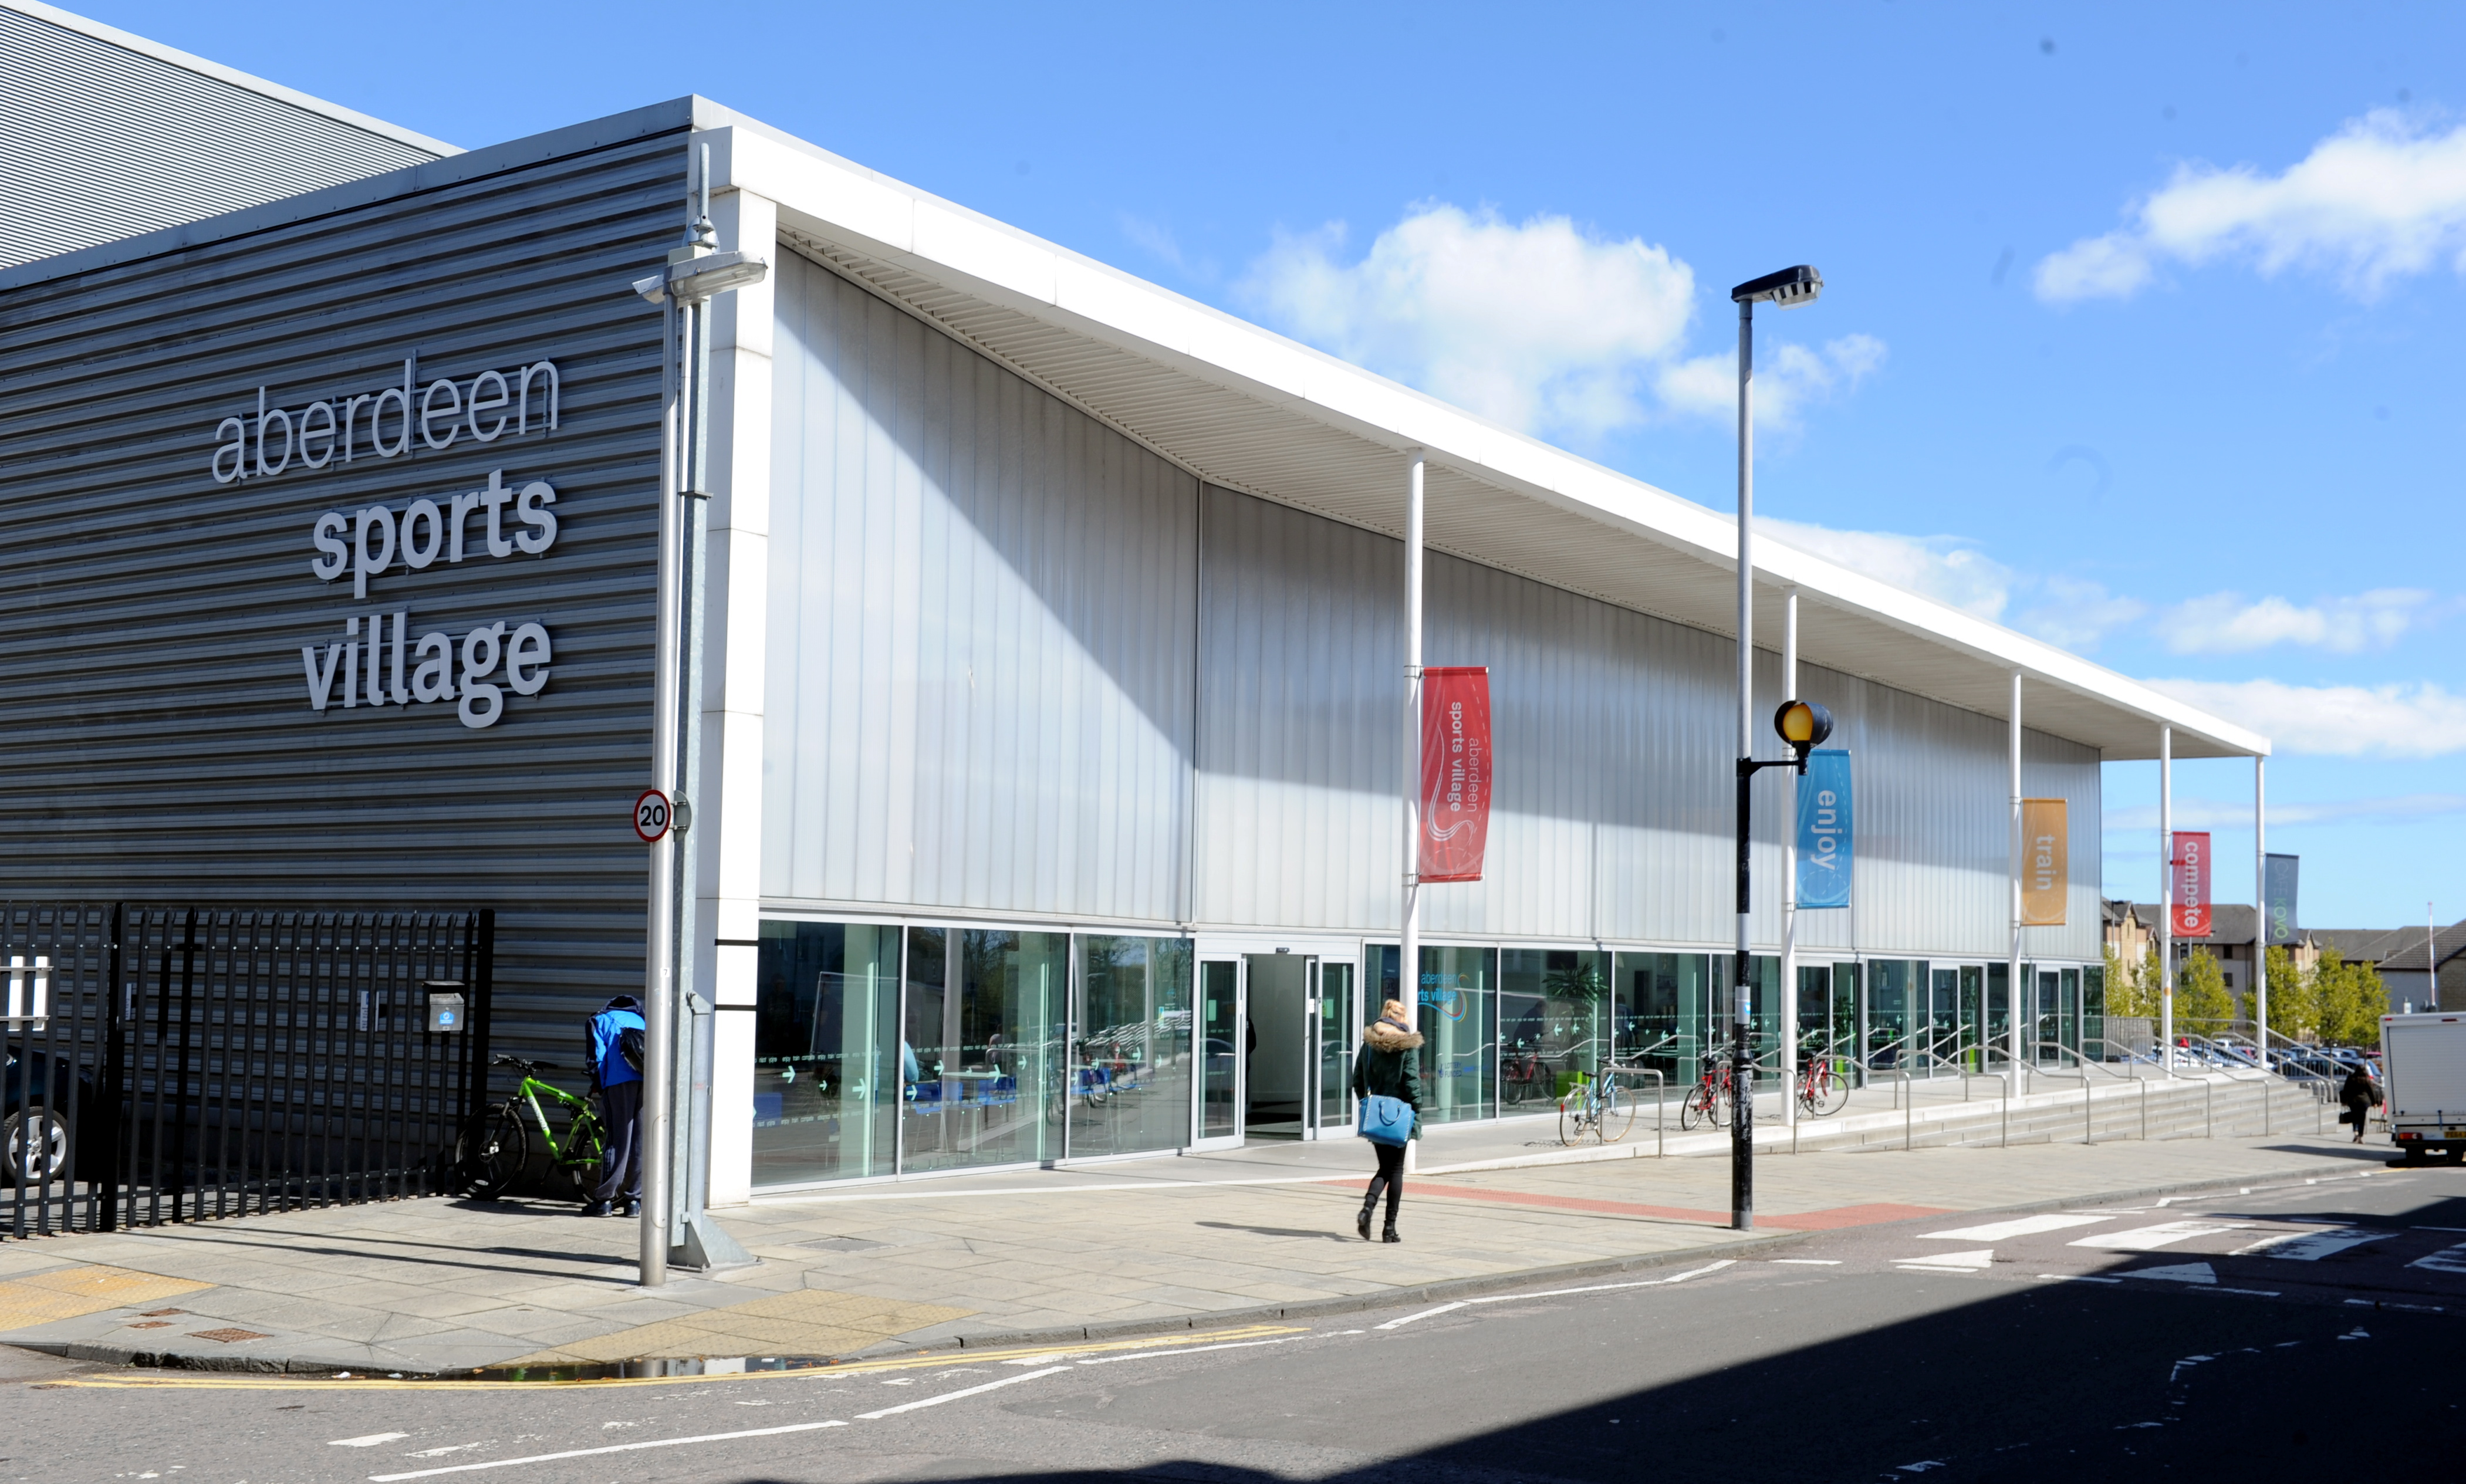 Aberdeen Sports Village is set to host the city's first Corporate Games.